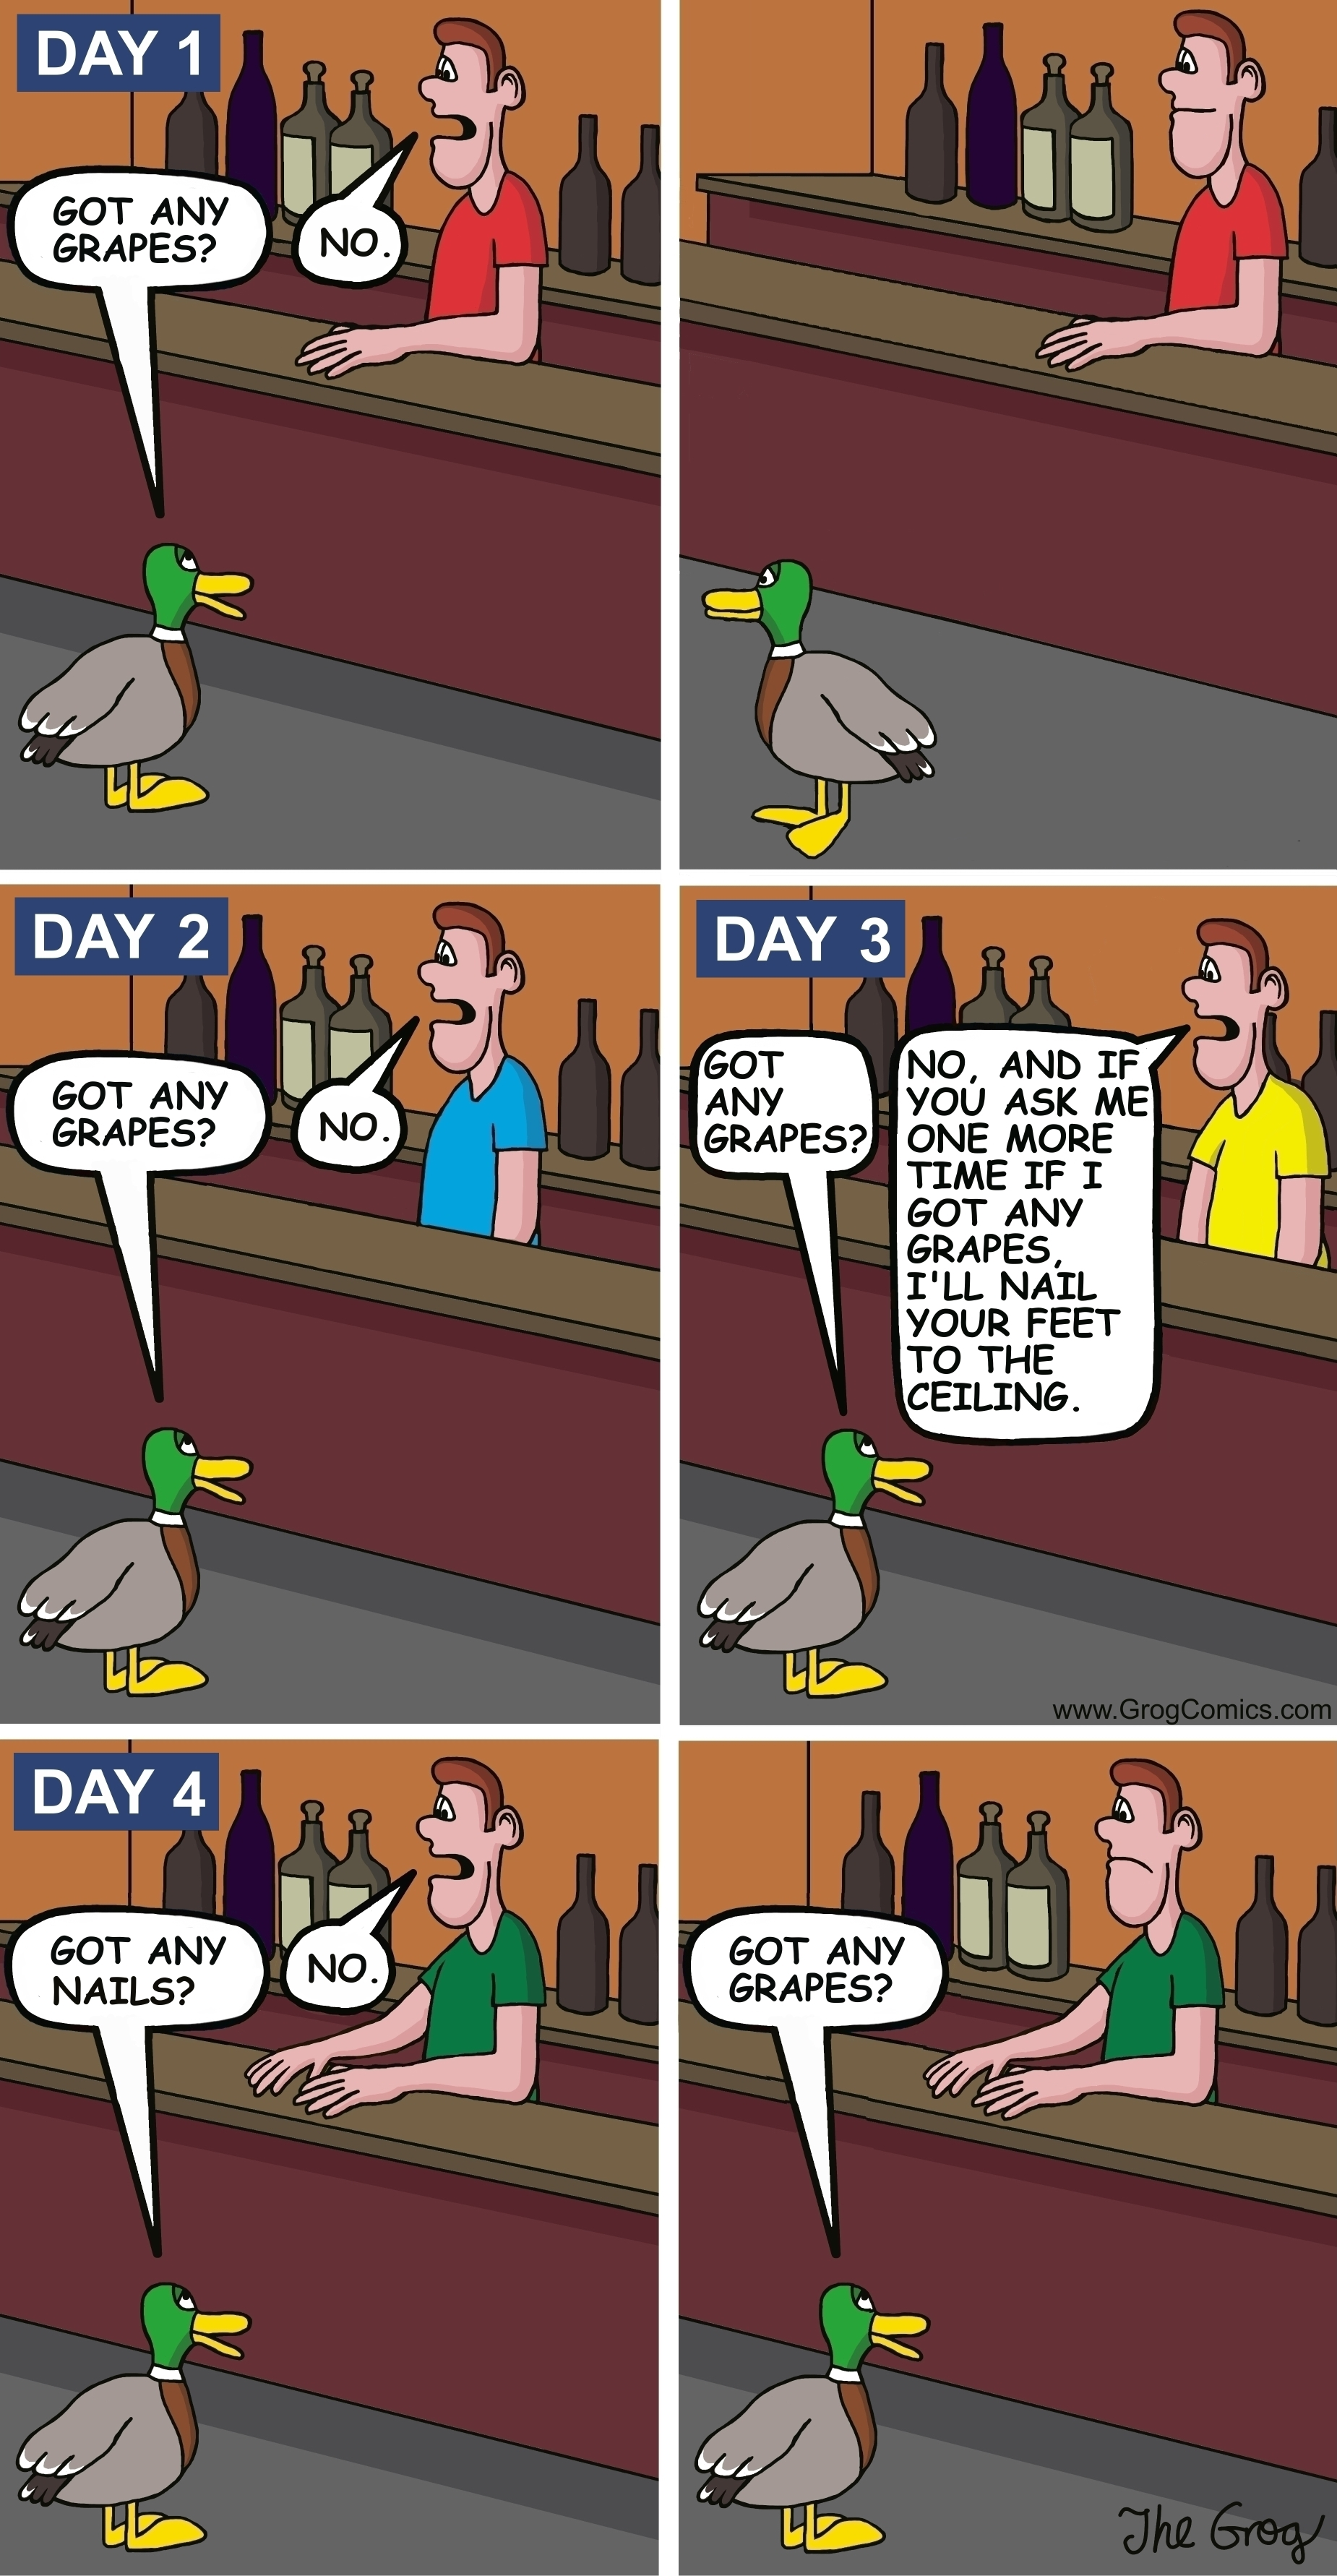 """A duck walks into a bar. """"Got any grapes?"""", says the duck to the bartender. """"No"""", replies the bartender. The duck leaves. The next day, the same duck walks into the bar. """"Got any grapes?"""", says the duck to the same bartender. """"No"""", says the bartender. The duck leaves. On the third day, the same duck walks into the bar. """"Got any grapes?"""", asks the duck. The bartender says angrily, """"No, and if you ask me one more time if I got any grapes, I'll nail your feet to the ceiling."""" The next day, the duck walks into the bar. """"Got any nails?"""", asks the duck to the bartender. The bartender, says """"No."""" The duck says, """"Got any grapes?"""""""